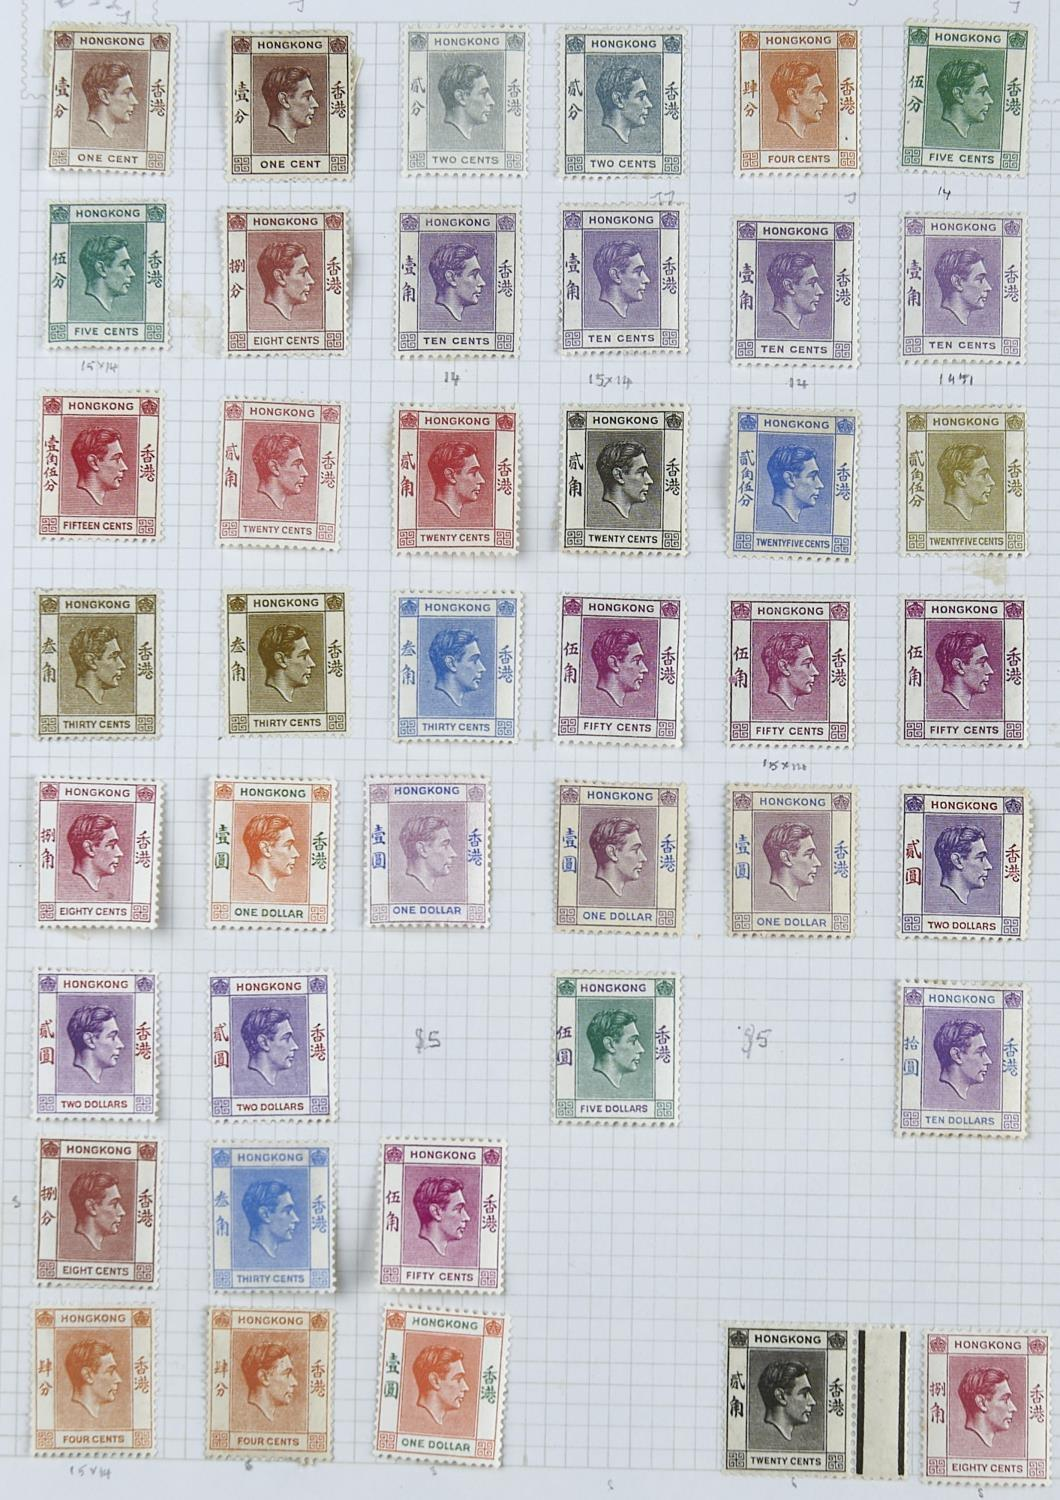 HONG KONG 1938-52 The mint selection with most values except $5 dull lilac & scarlet and $10 green &